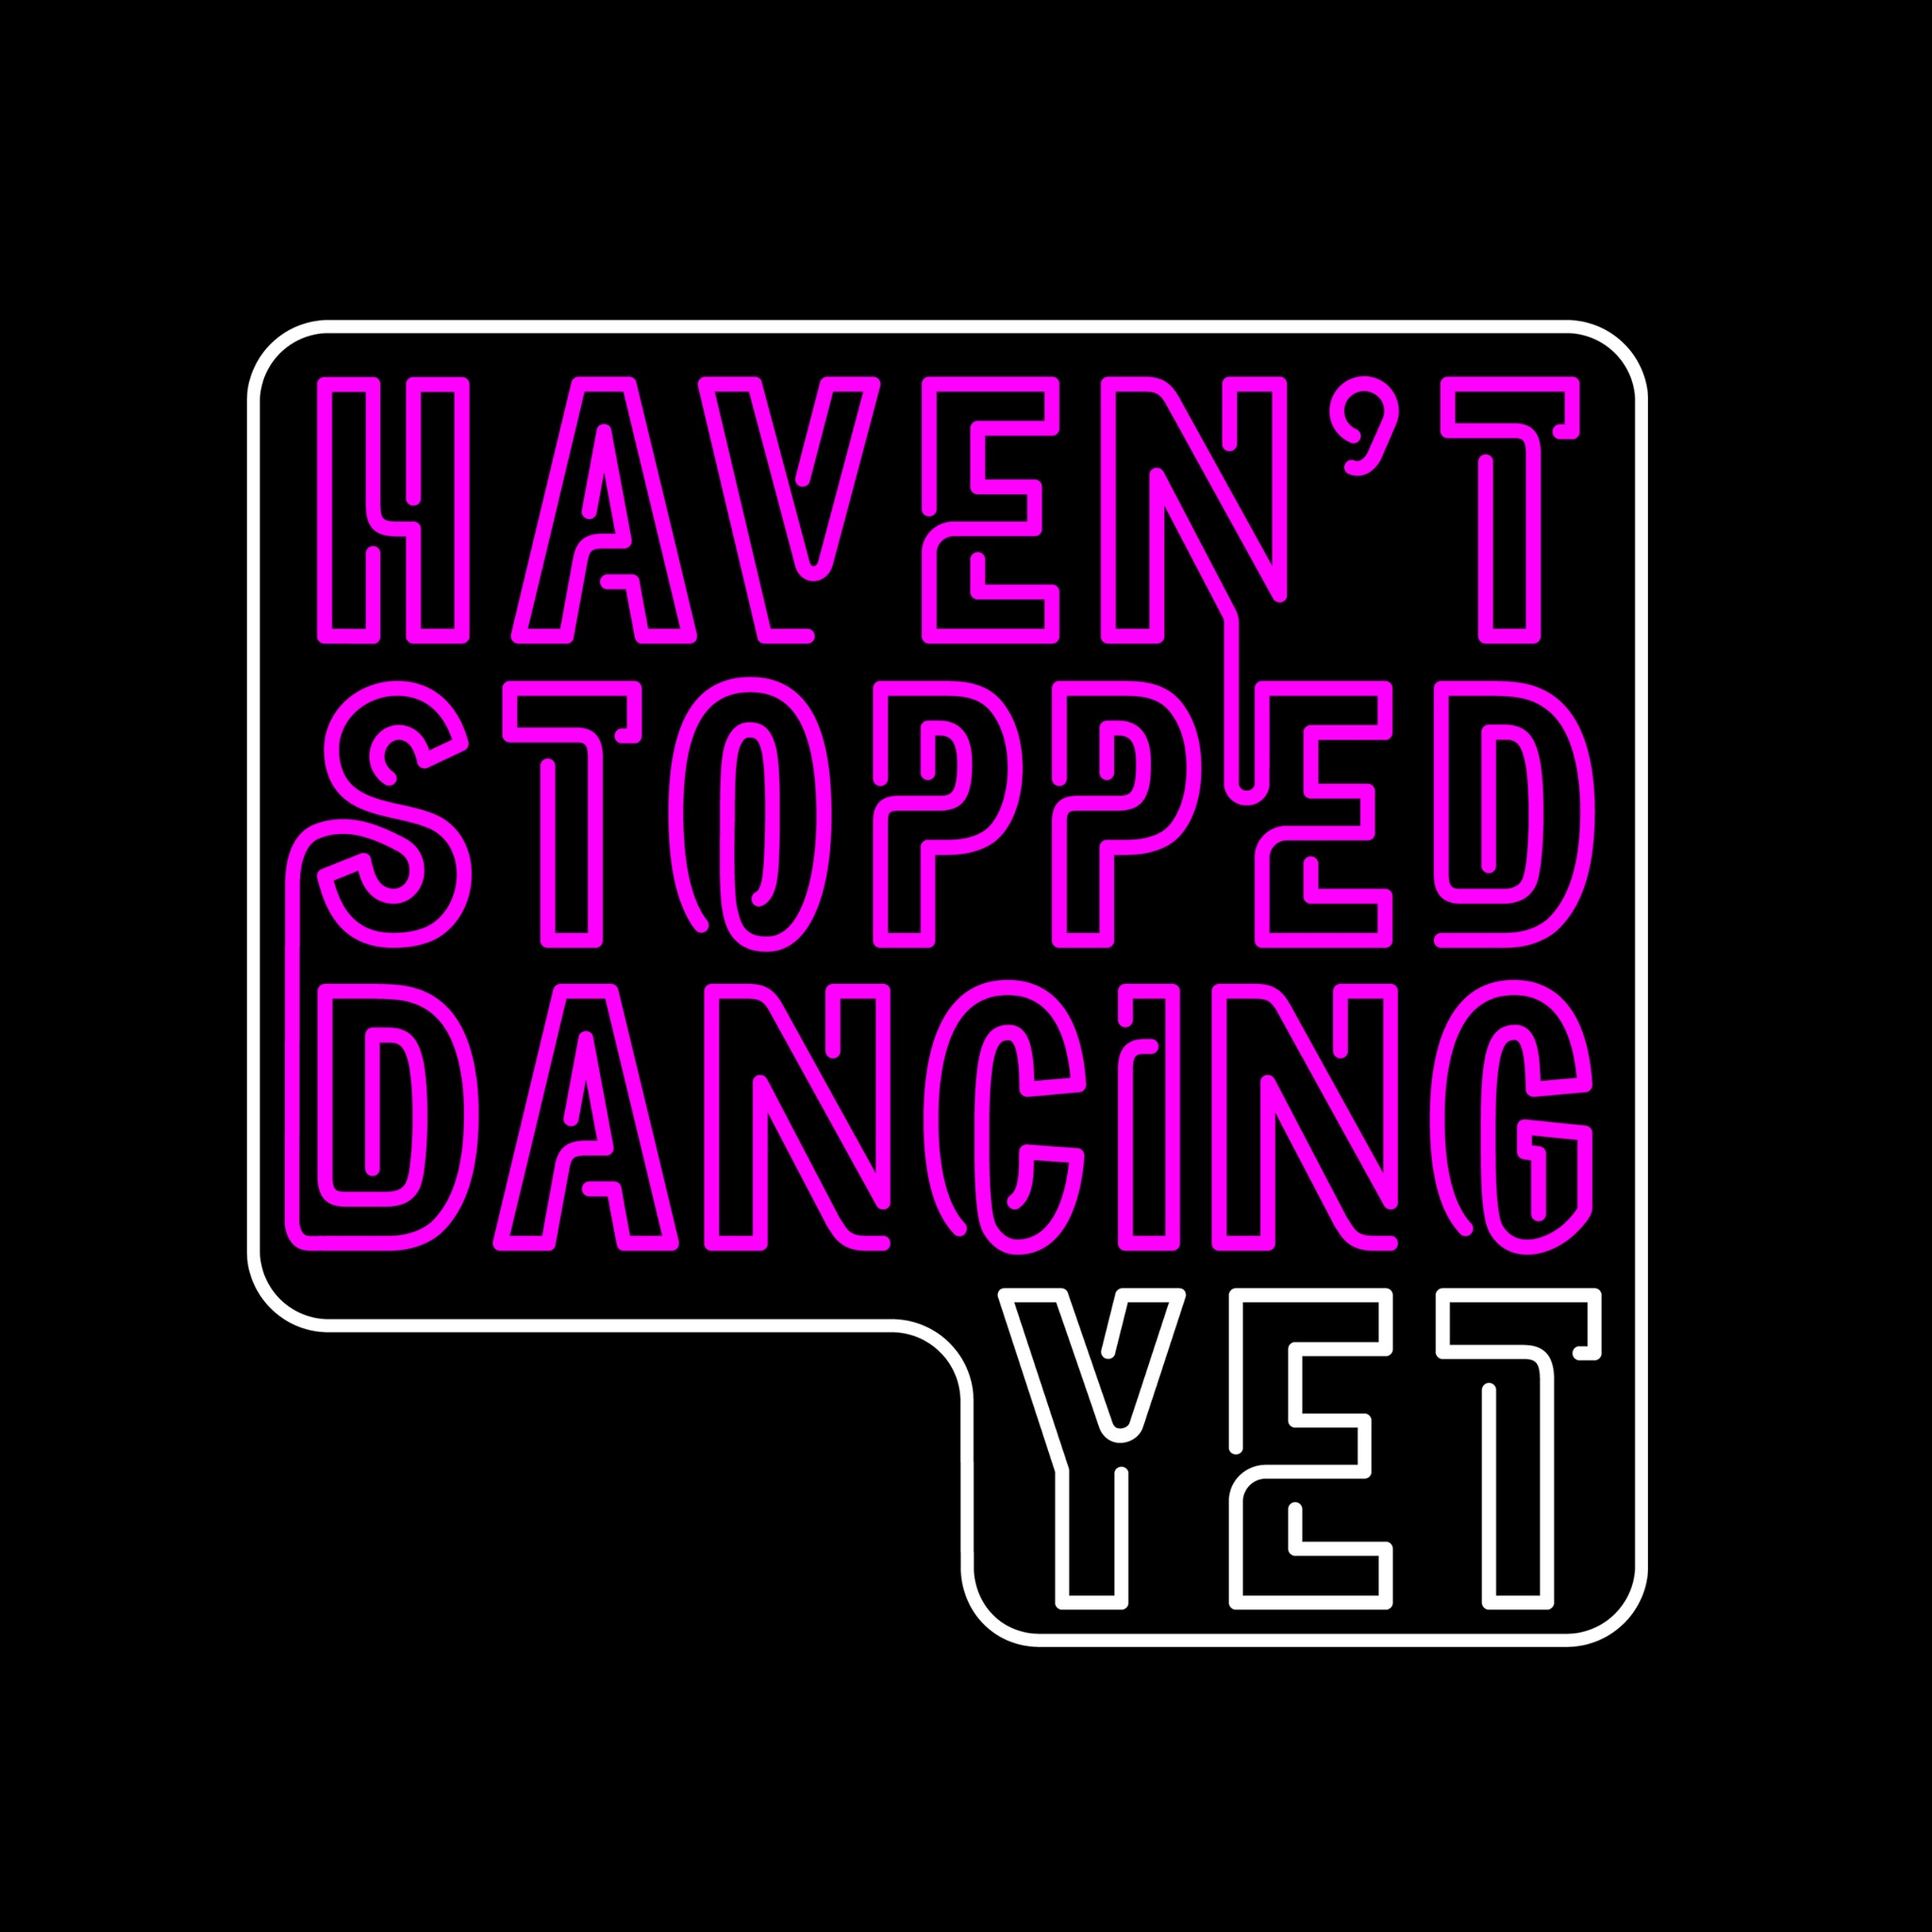 HAVEN'T STOPPED DANCING YET - ISLINGTON - Saturday 6th July 2019TIme: 730pmVenue: Islington Assembly Halls, London